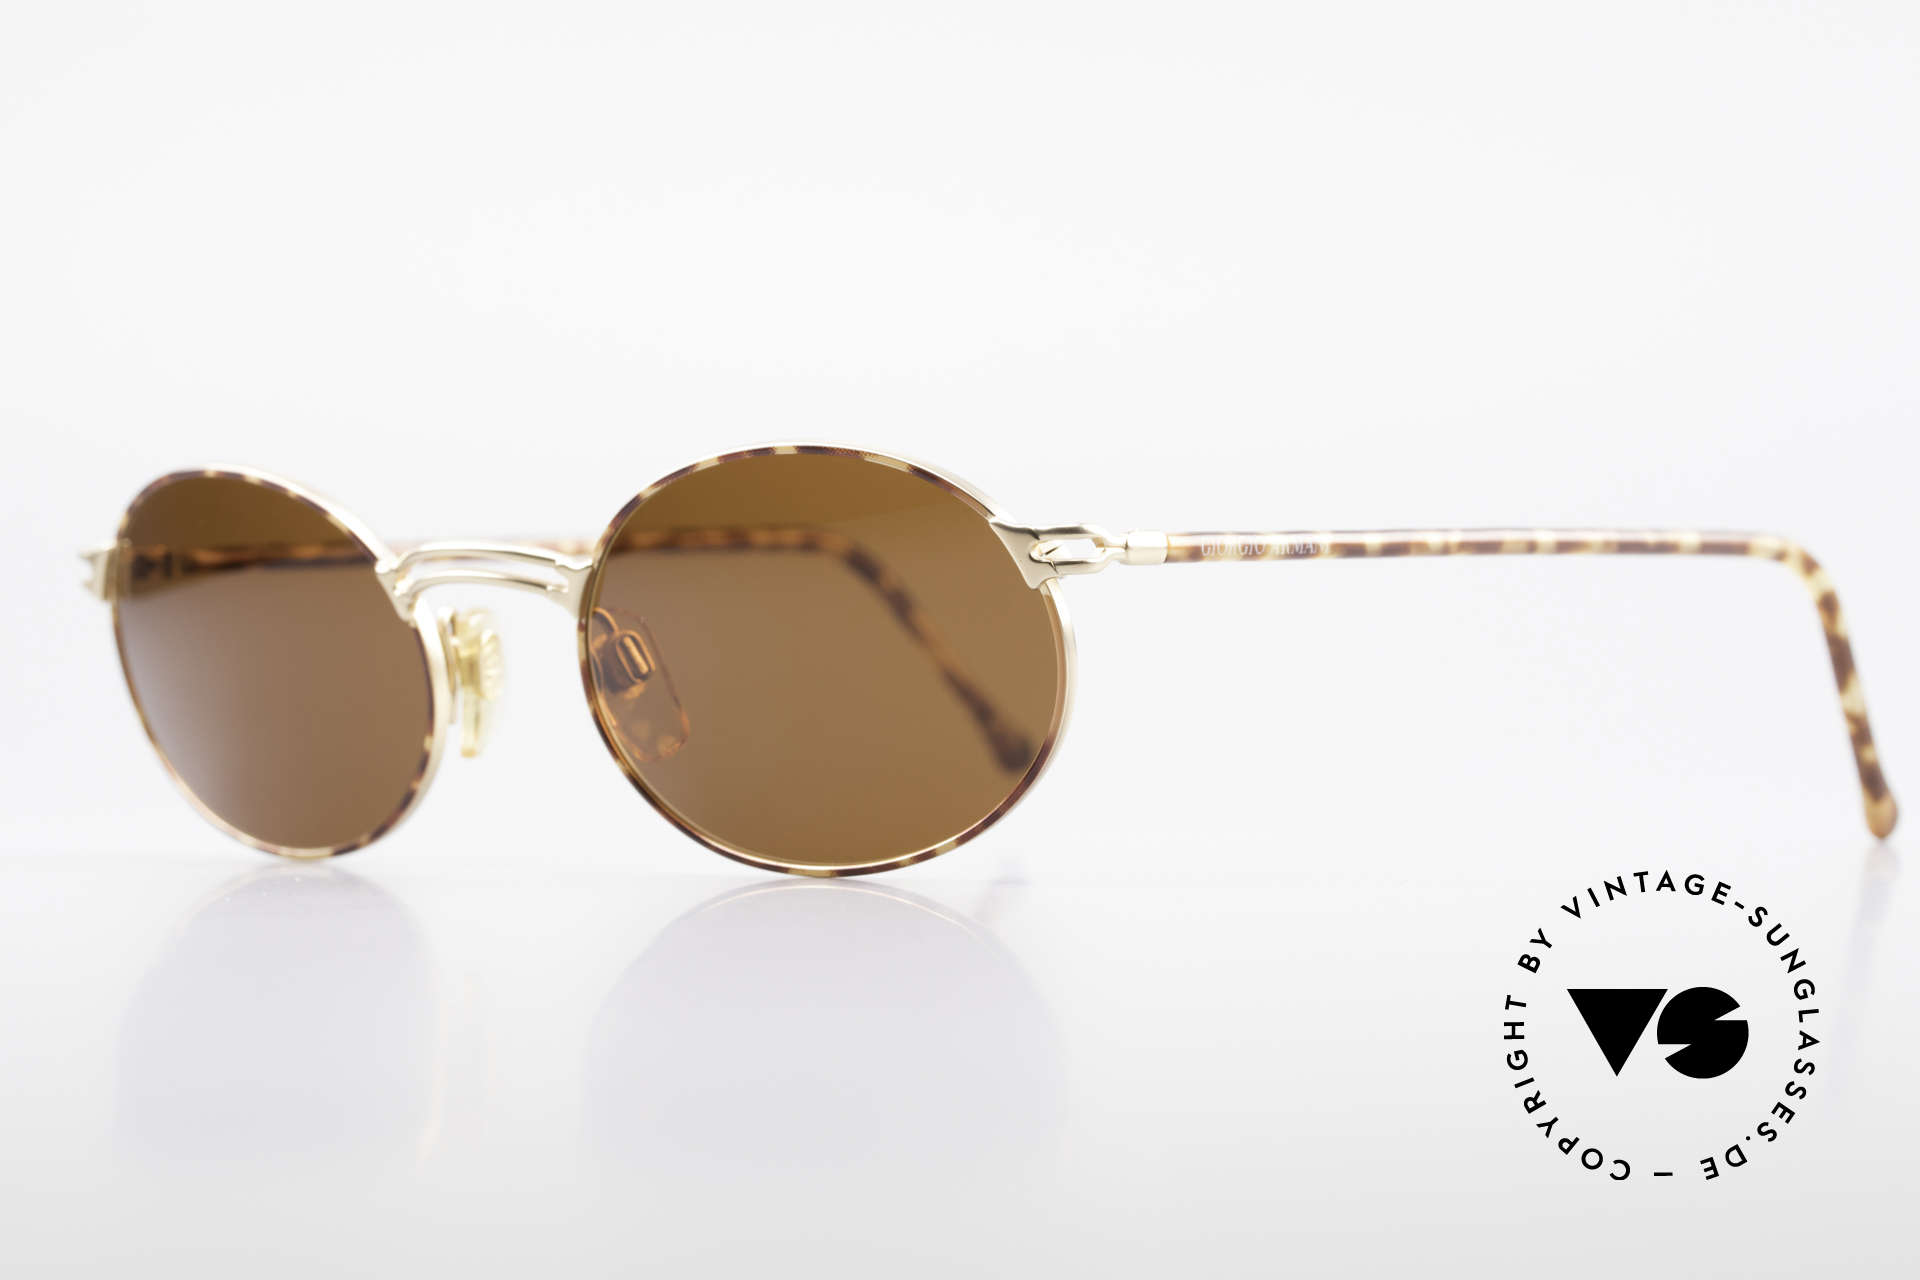 Giorgio Armani 194 Oval 90s Sunglasses No Retro, premium craftsmanship & interesting chestnut color, Made for Men and Women